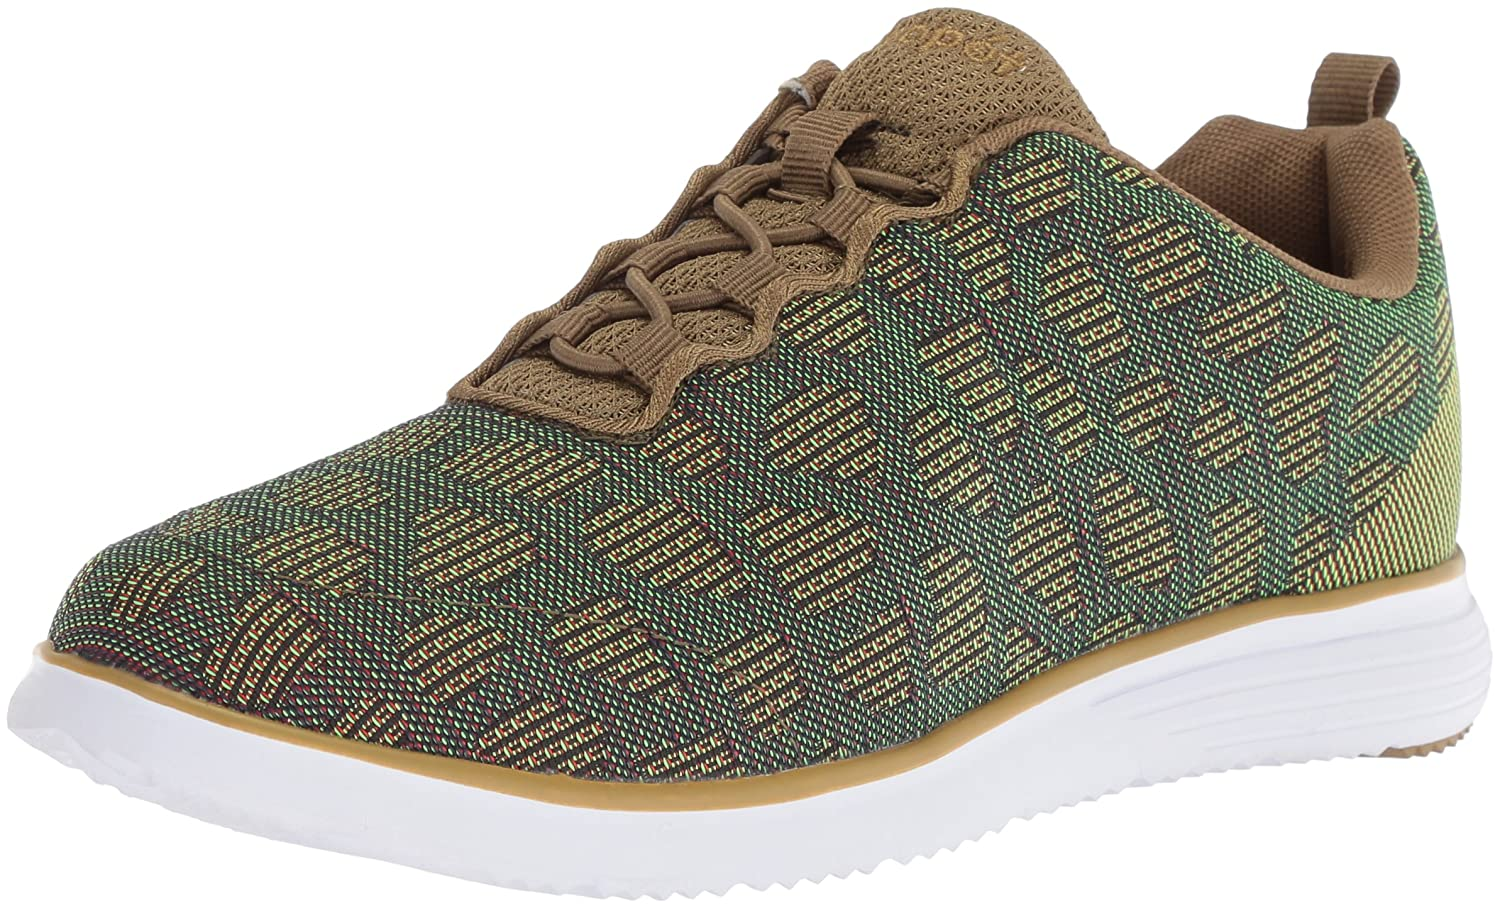 Propét Women's TravelFit Walking Shoe B073DMTPF2 11 4E US|Green